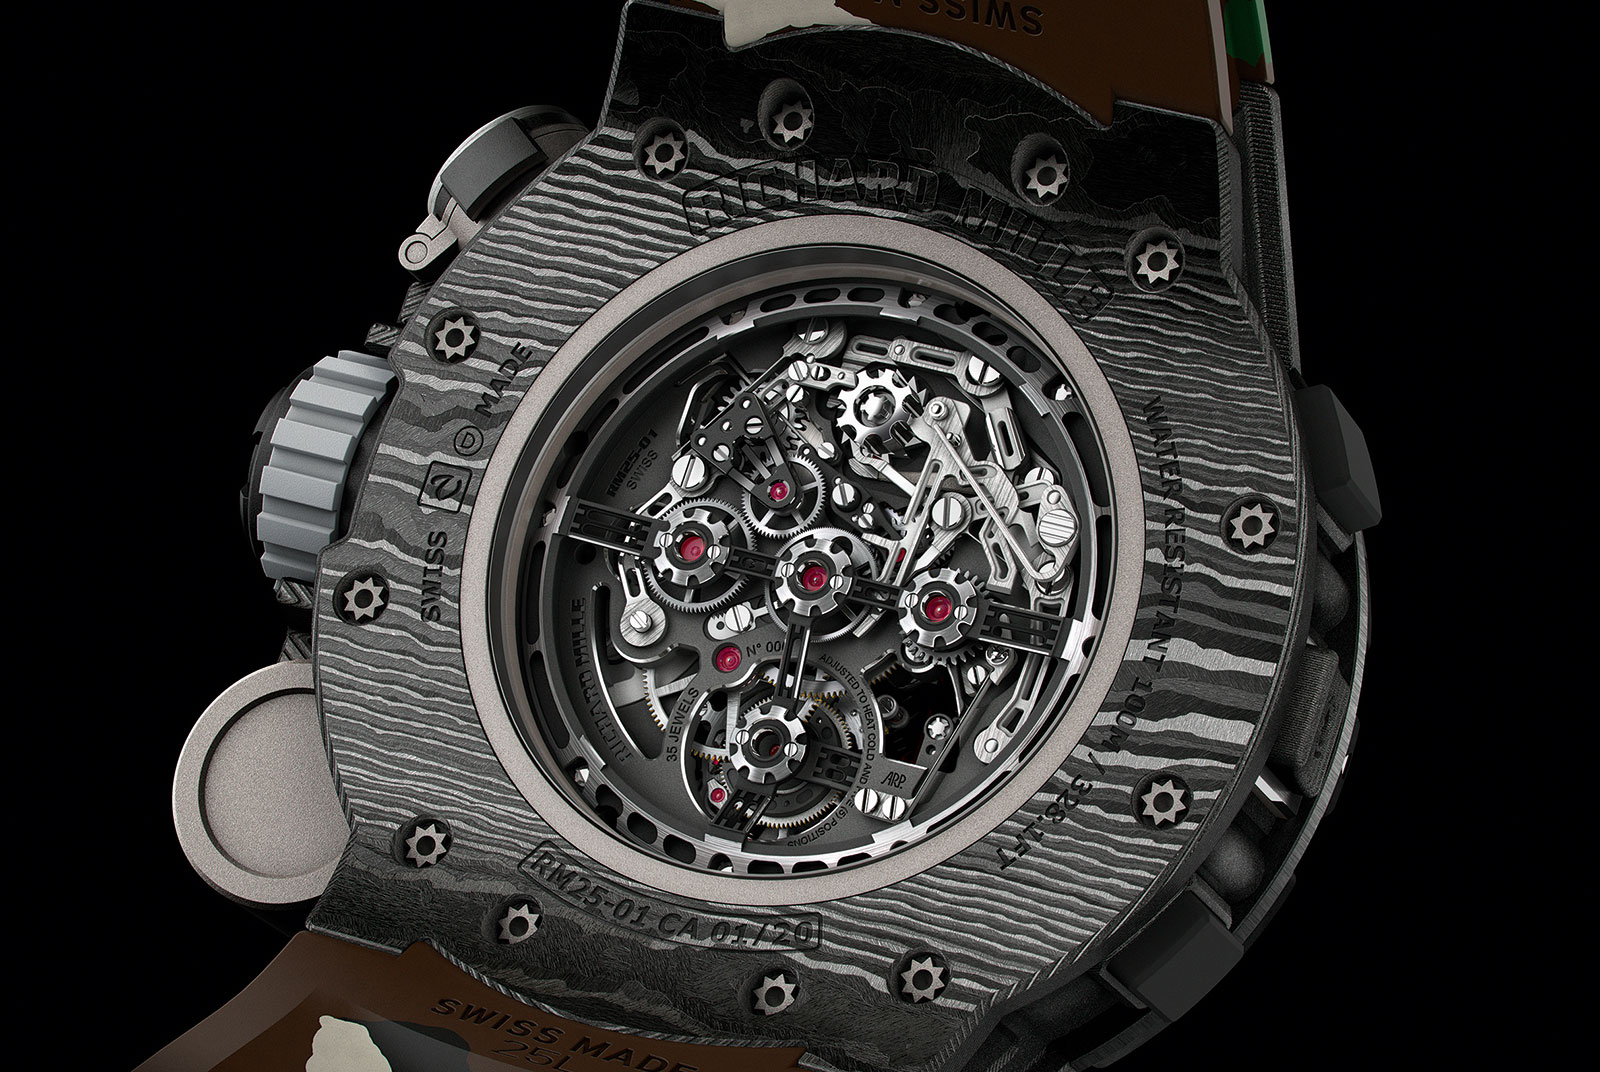 Richard Mille RM 25-01 Tourbillon Compass Stallone 2